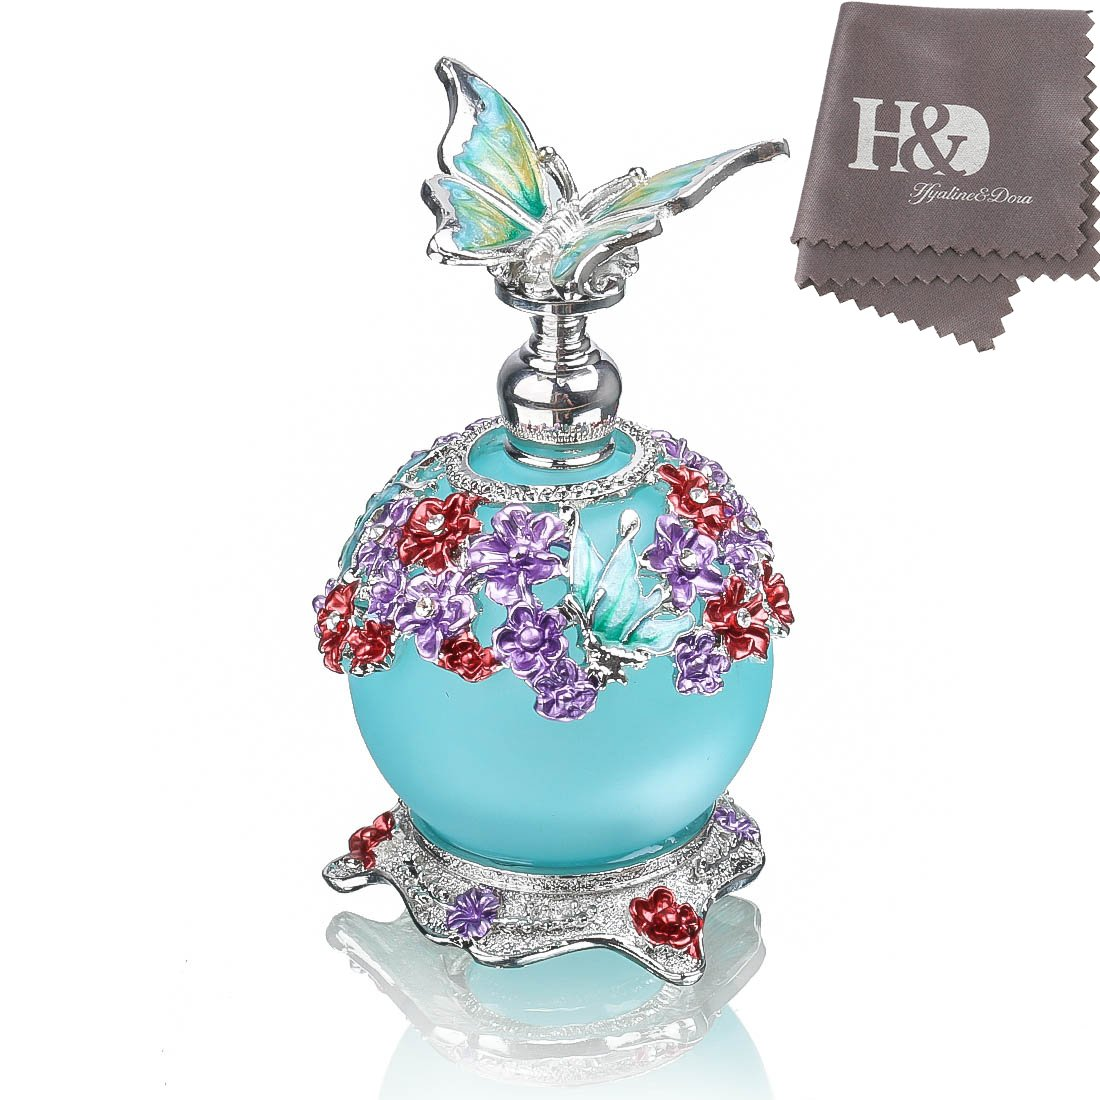 H& D Butterfly Perfume Bottle, Retro Frosted Glass Refillable Glass Perfume Bottle Empty with Blue Bottle Body 23ml LTD